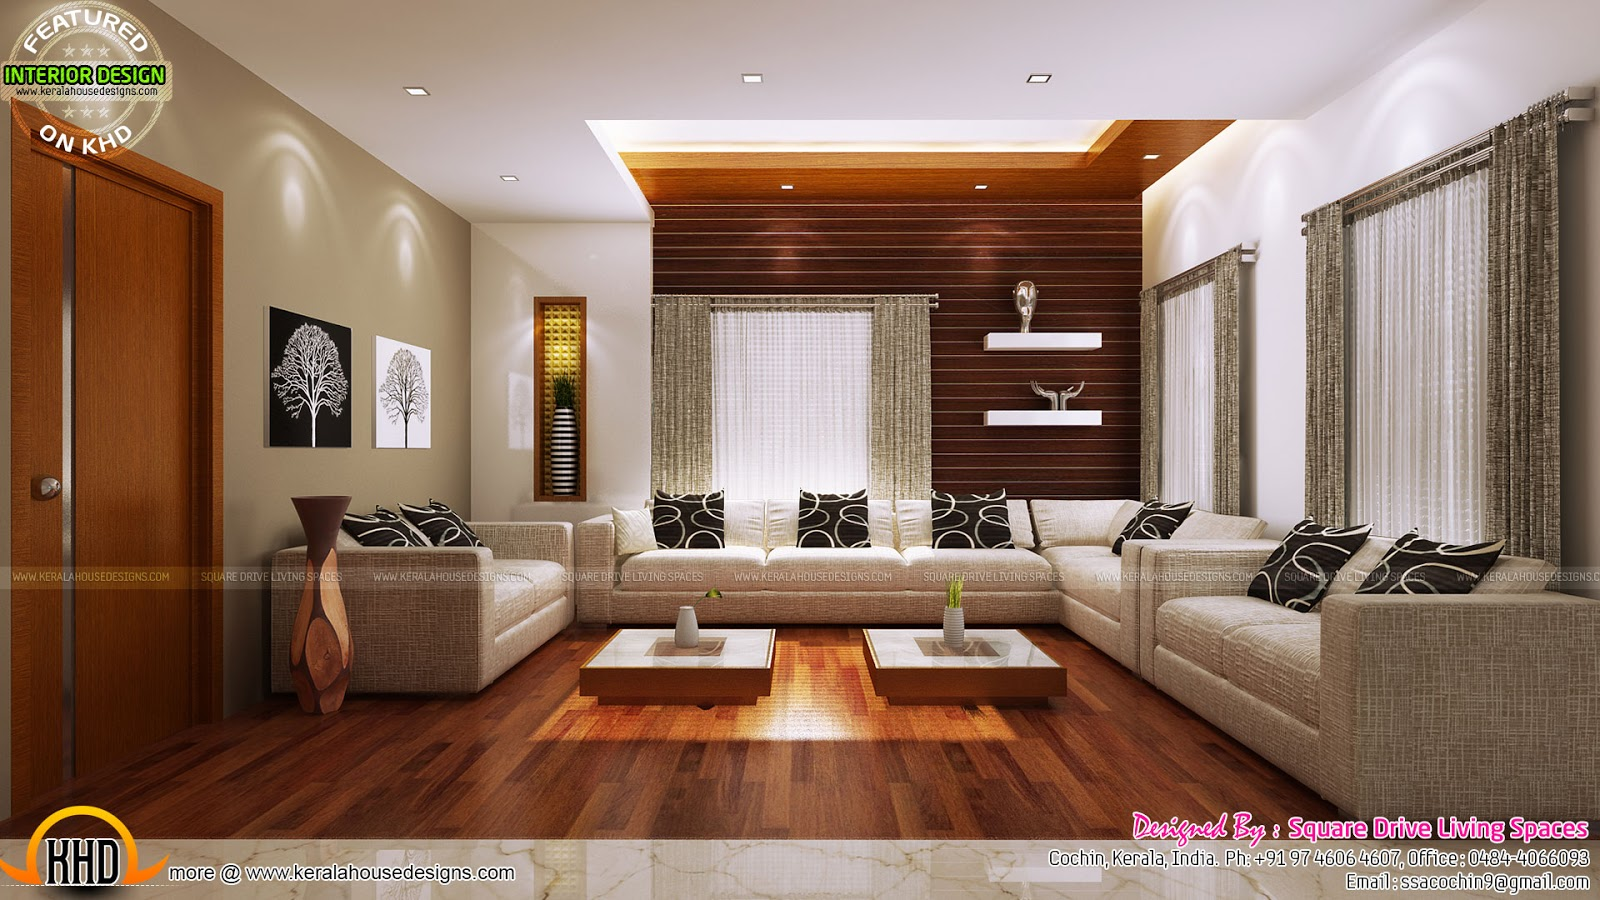 interior design in kerala homes excellent kerala interior design kerala home design and 24453